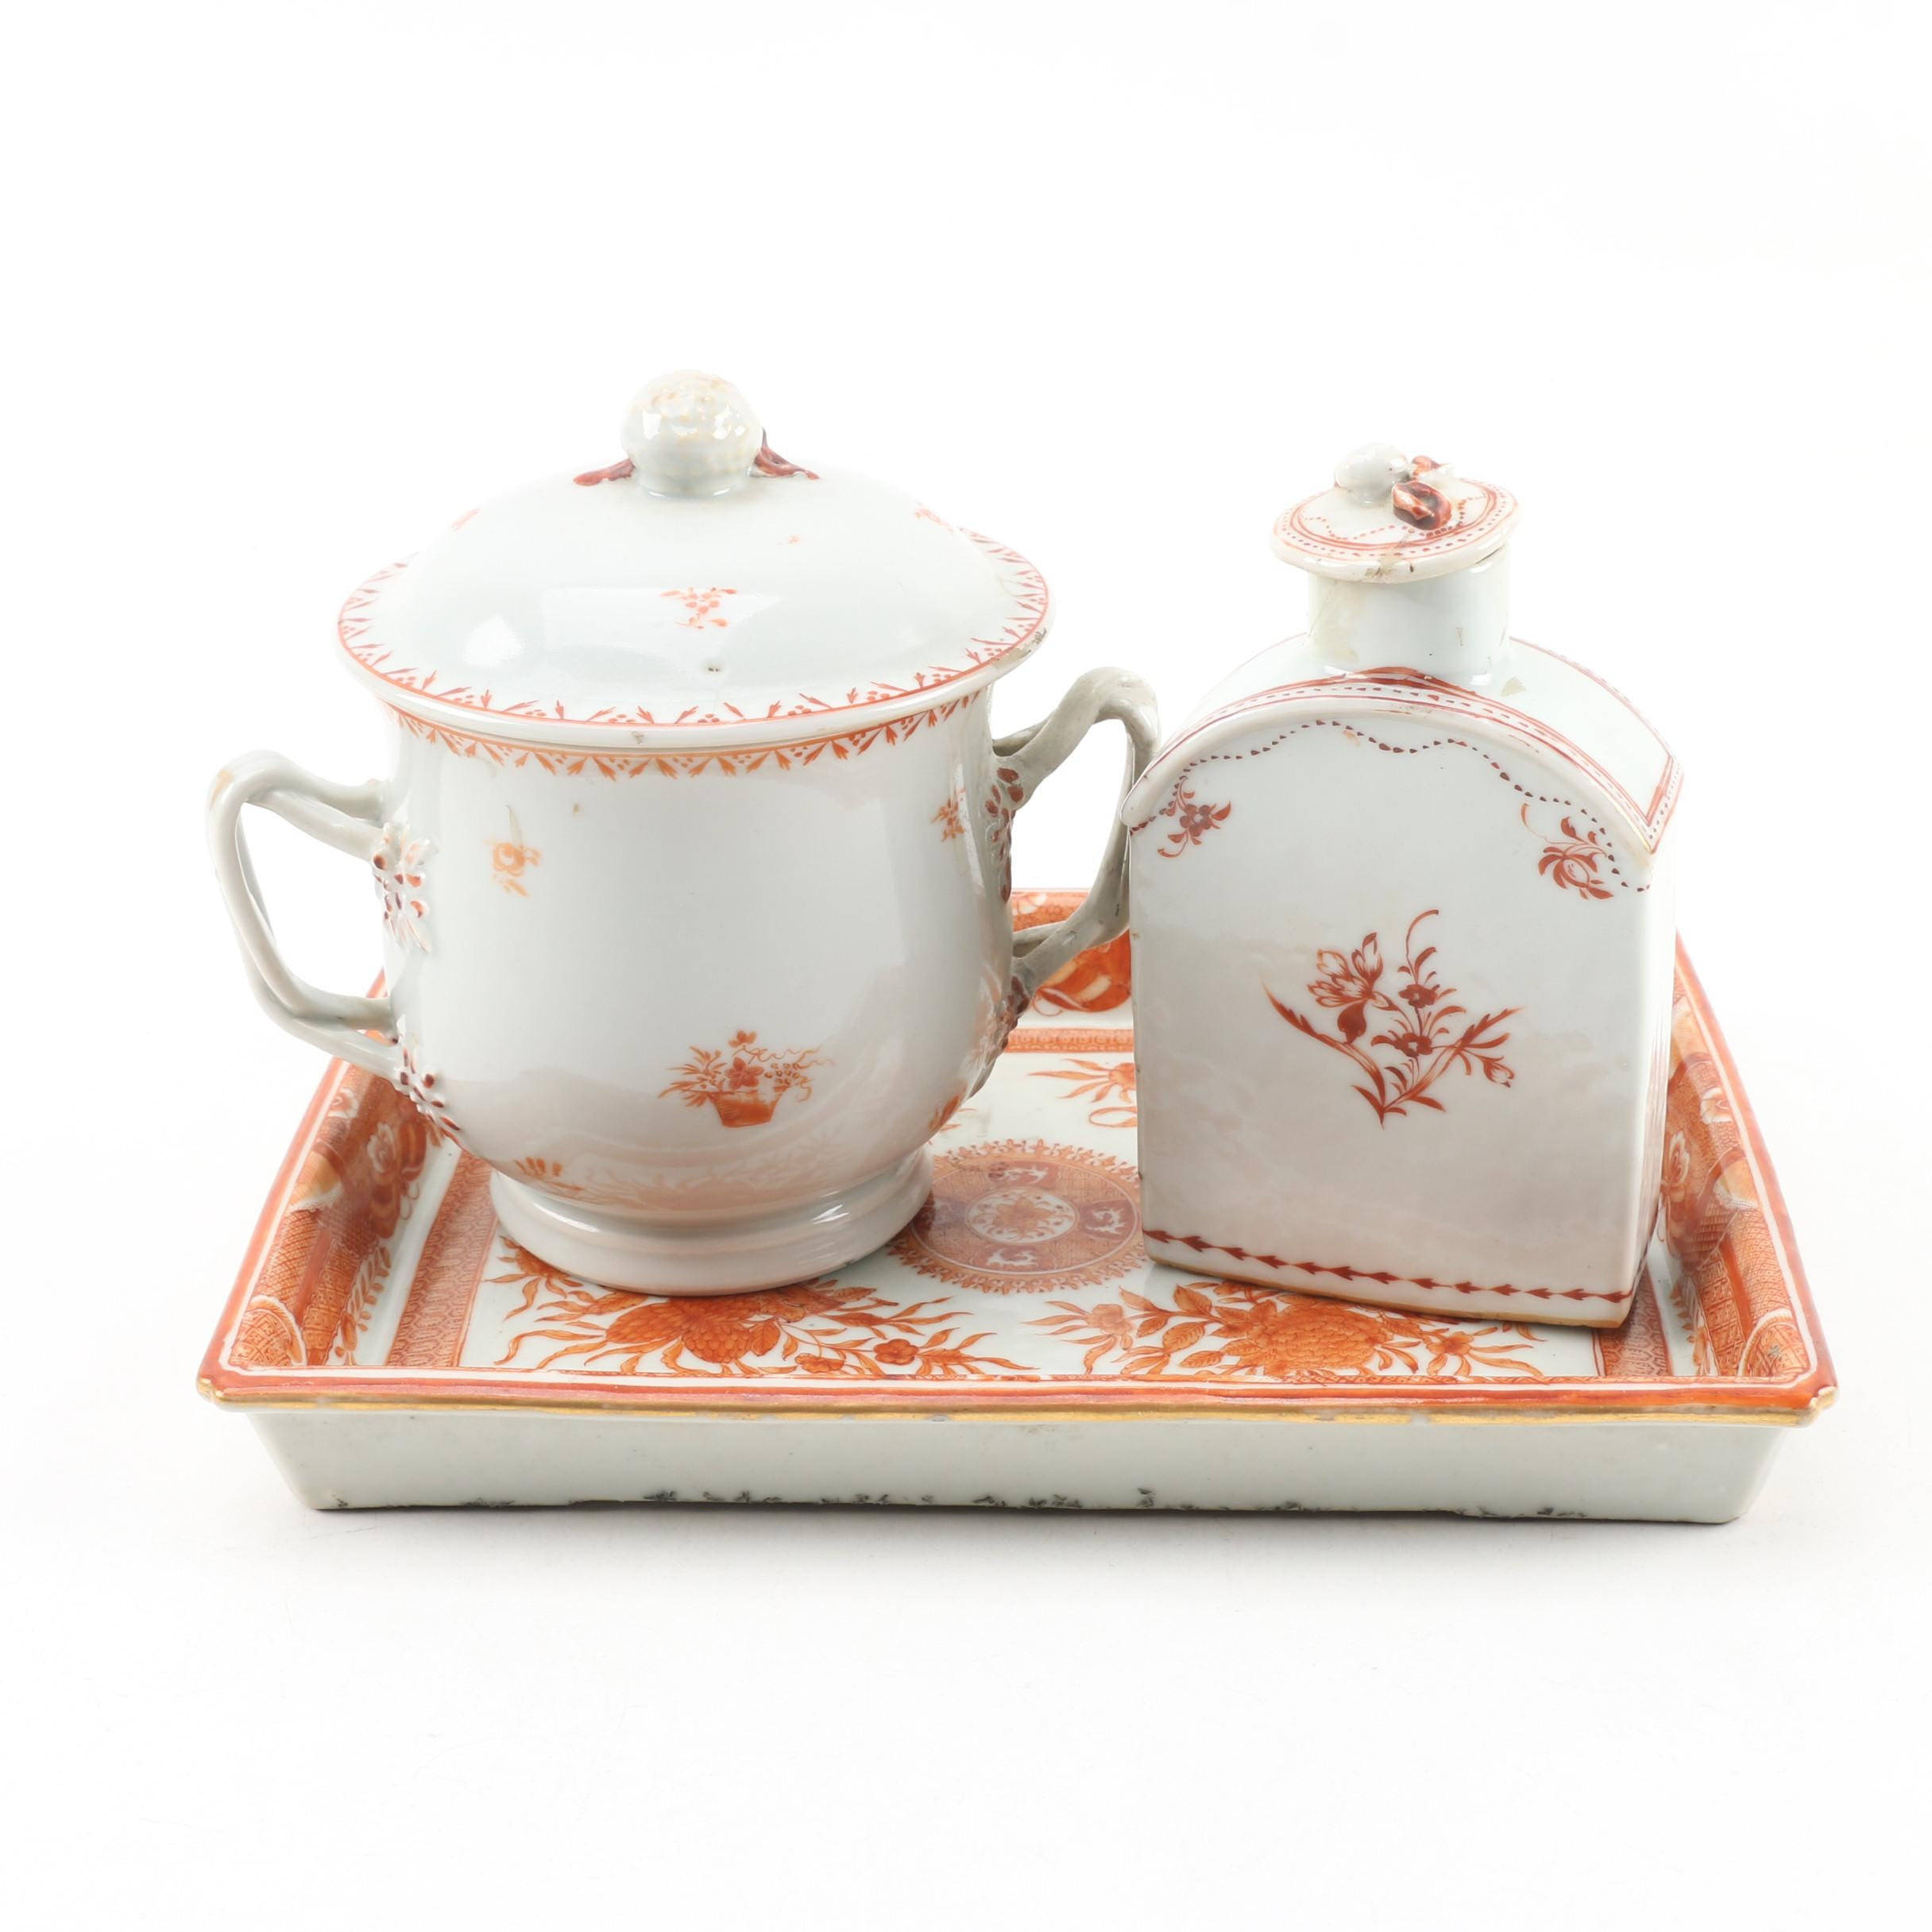 Chinese Export Ware Dish with Floral Sugar Bowl and Bottle